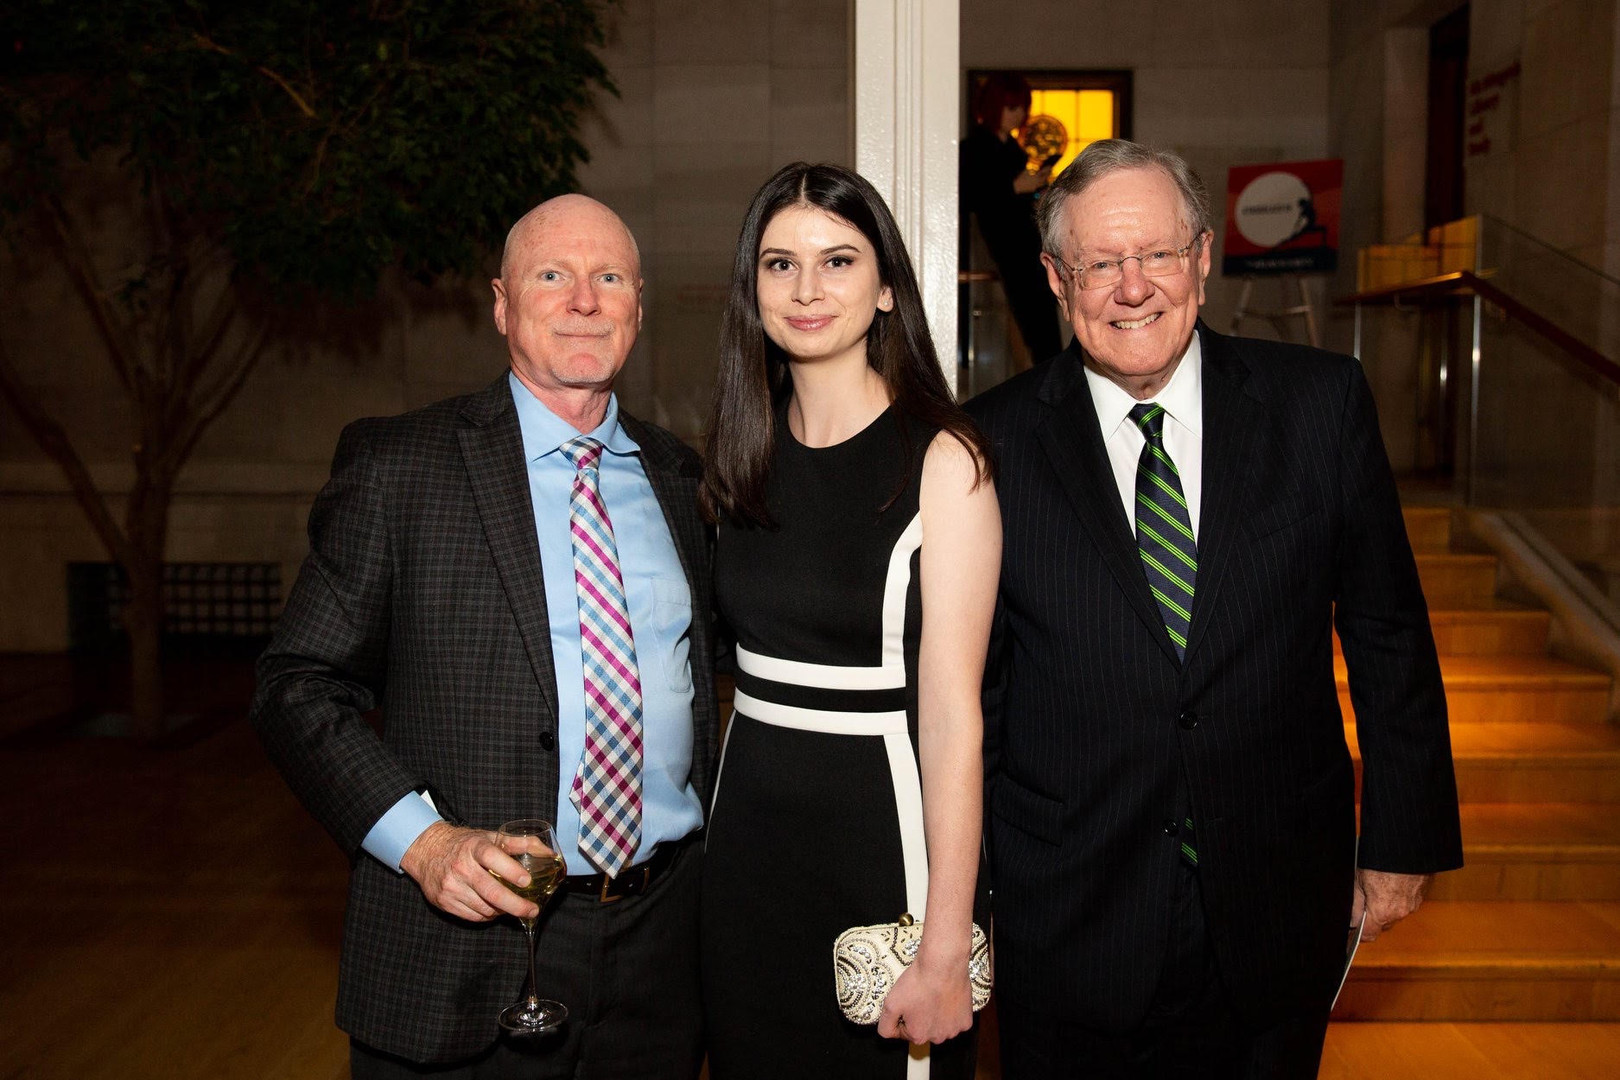 Maeve with Steve Forbes